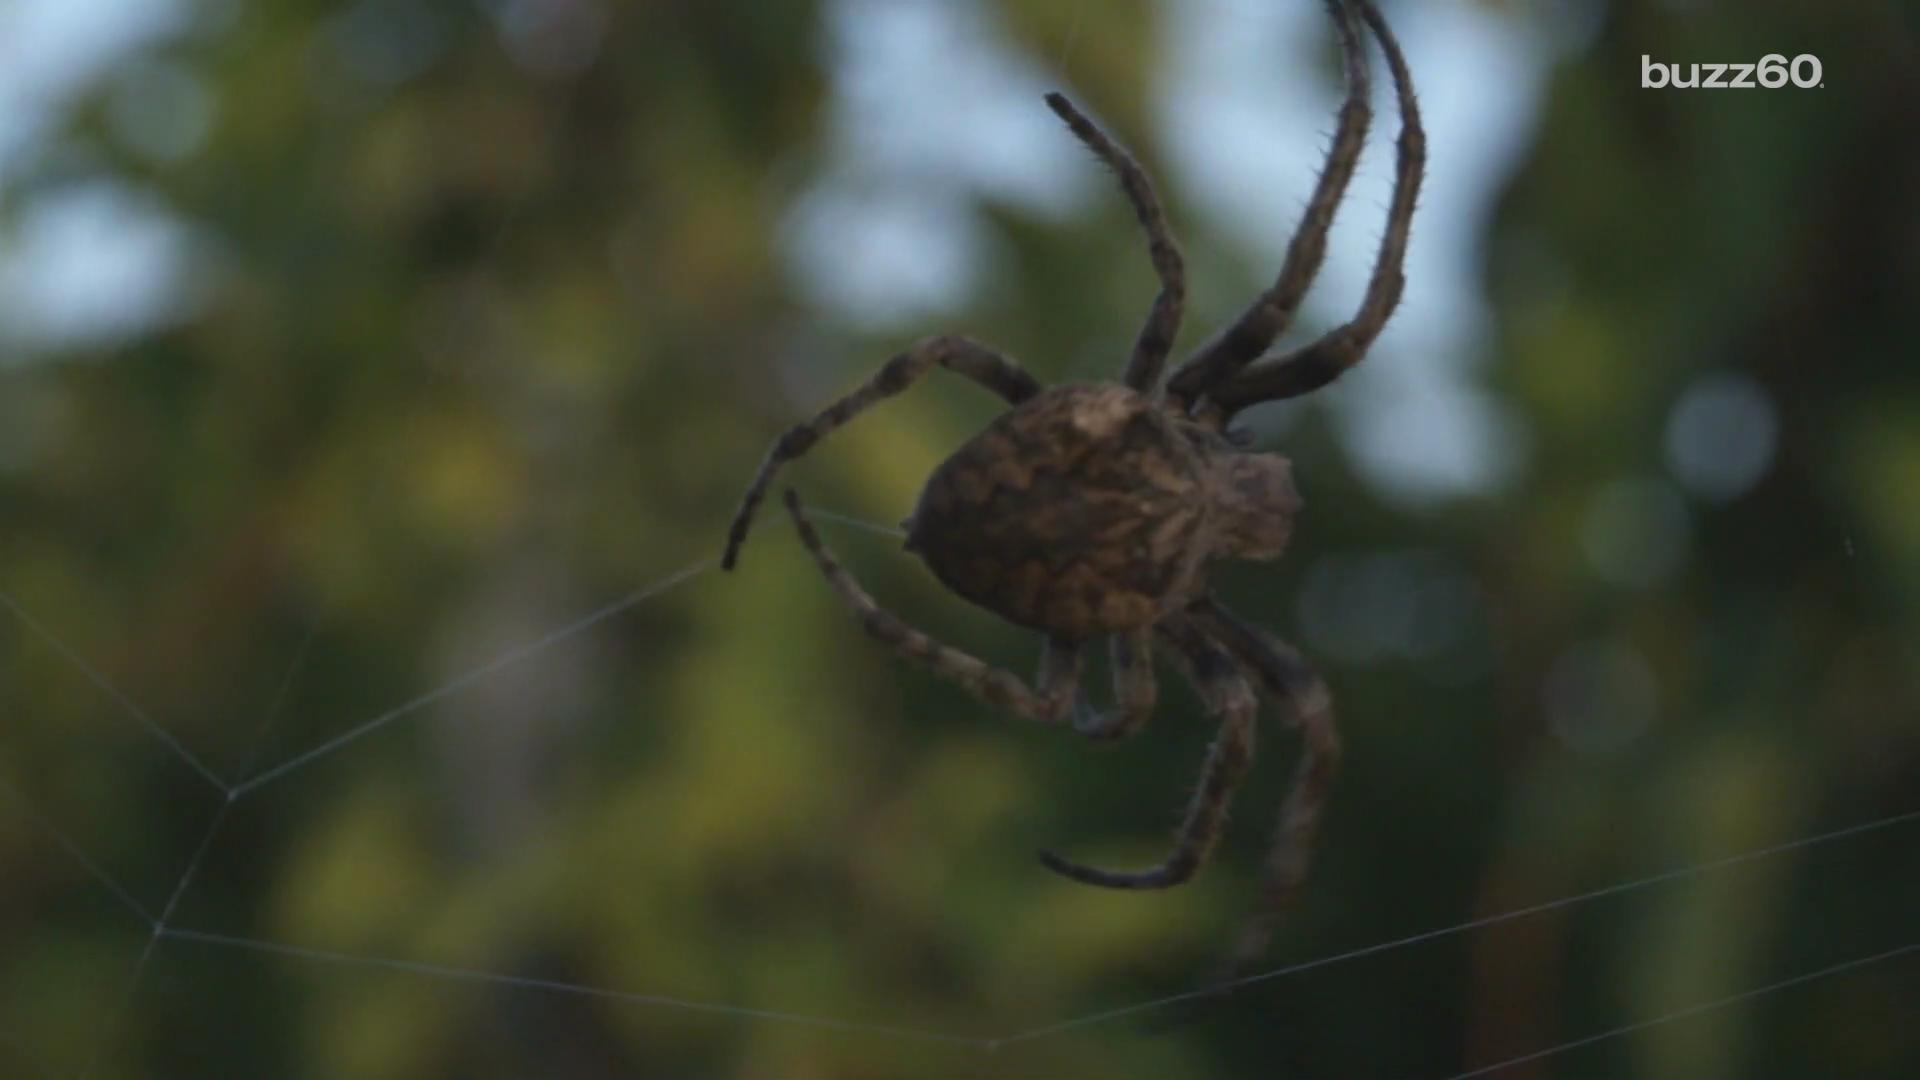 Man screaming at a spider prompts reports of domestic violence